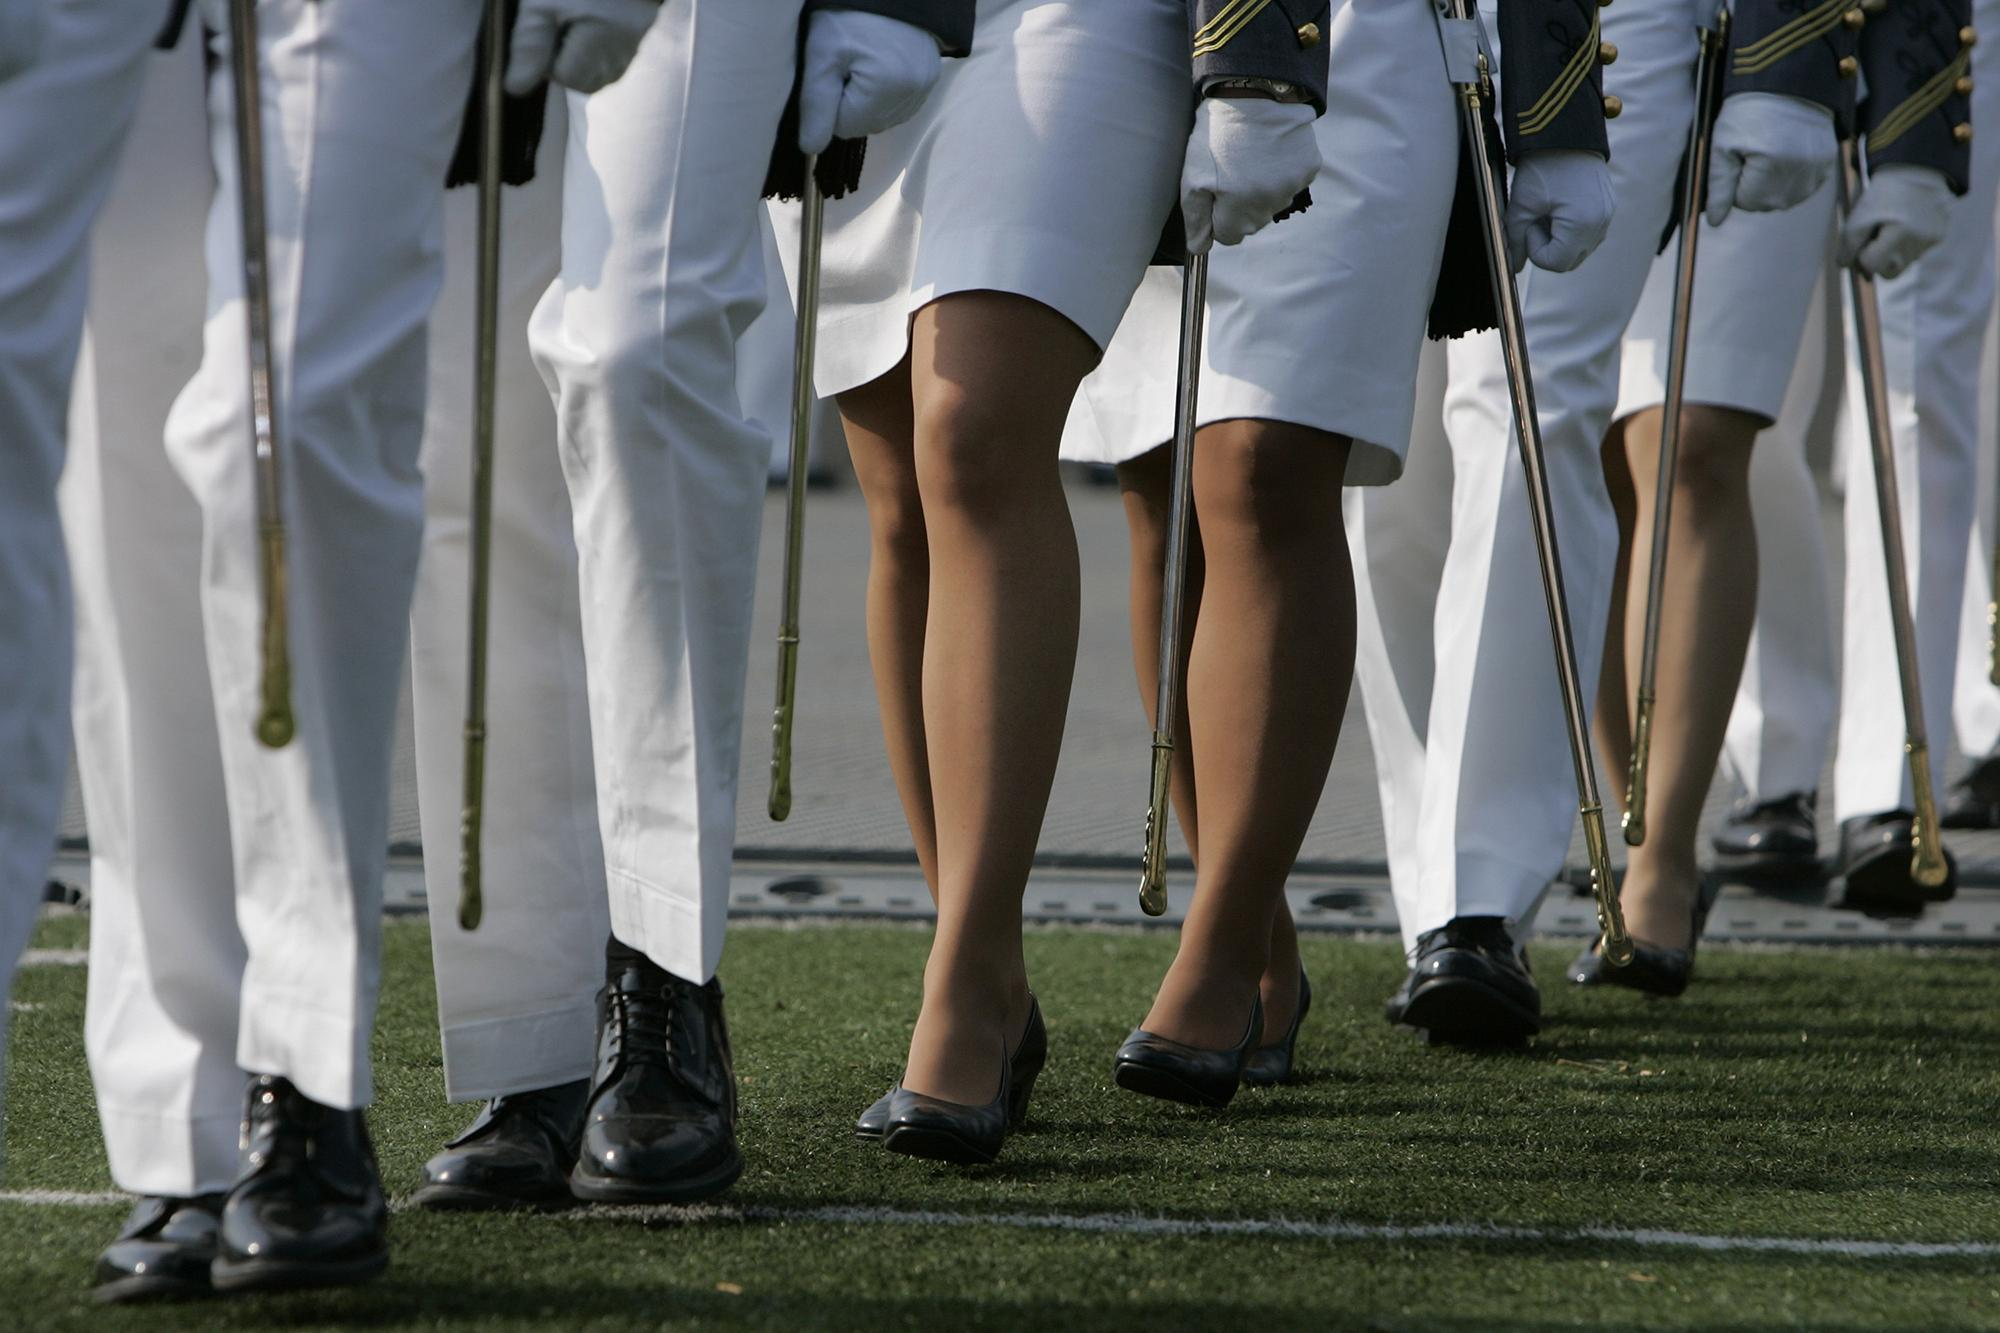 U.S. Military Academy cadets march into Michie Stadium for graduation in West Point, N.Y.